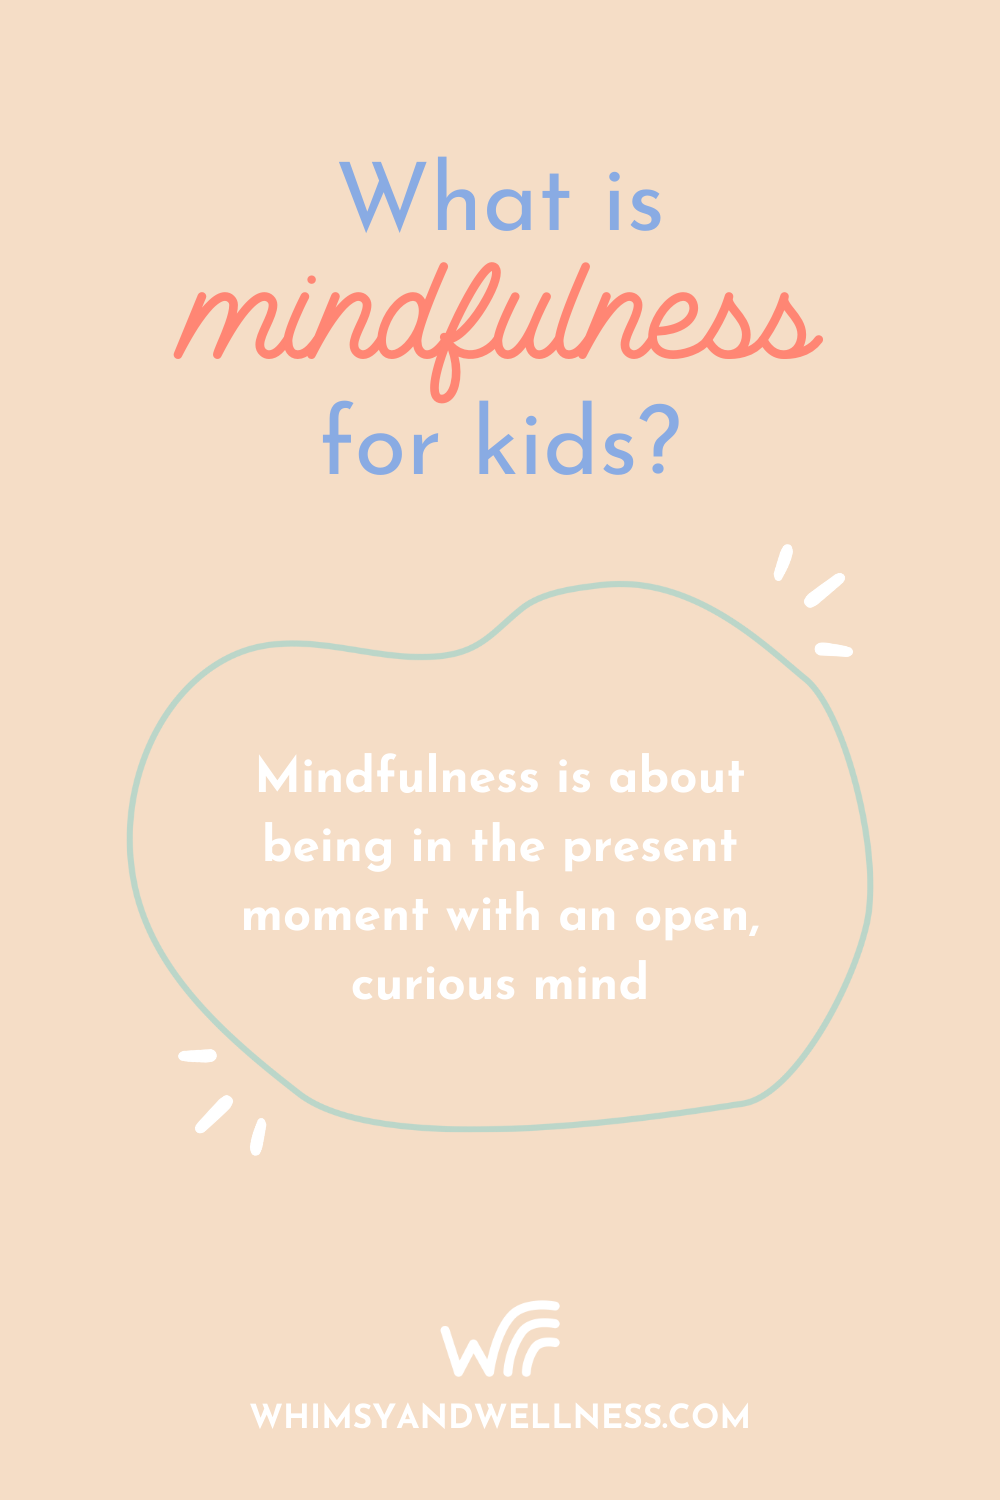 What is Mindfulness for kids?